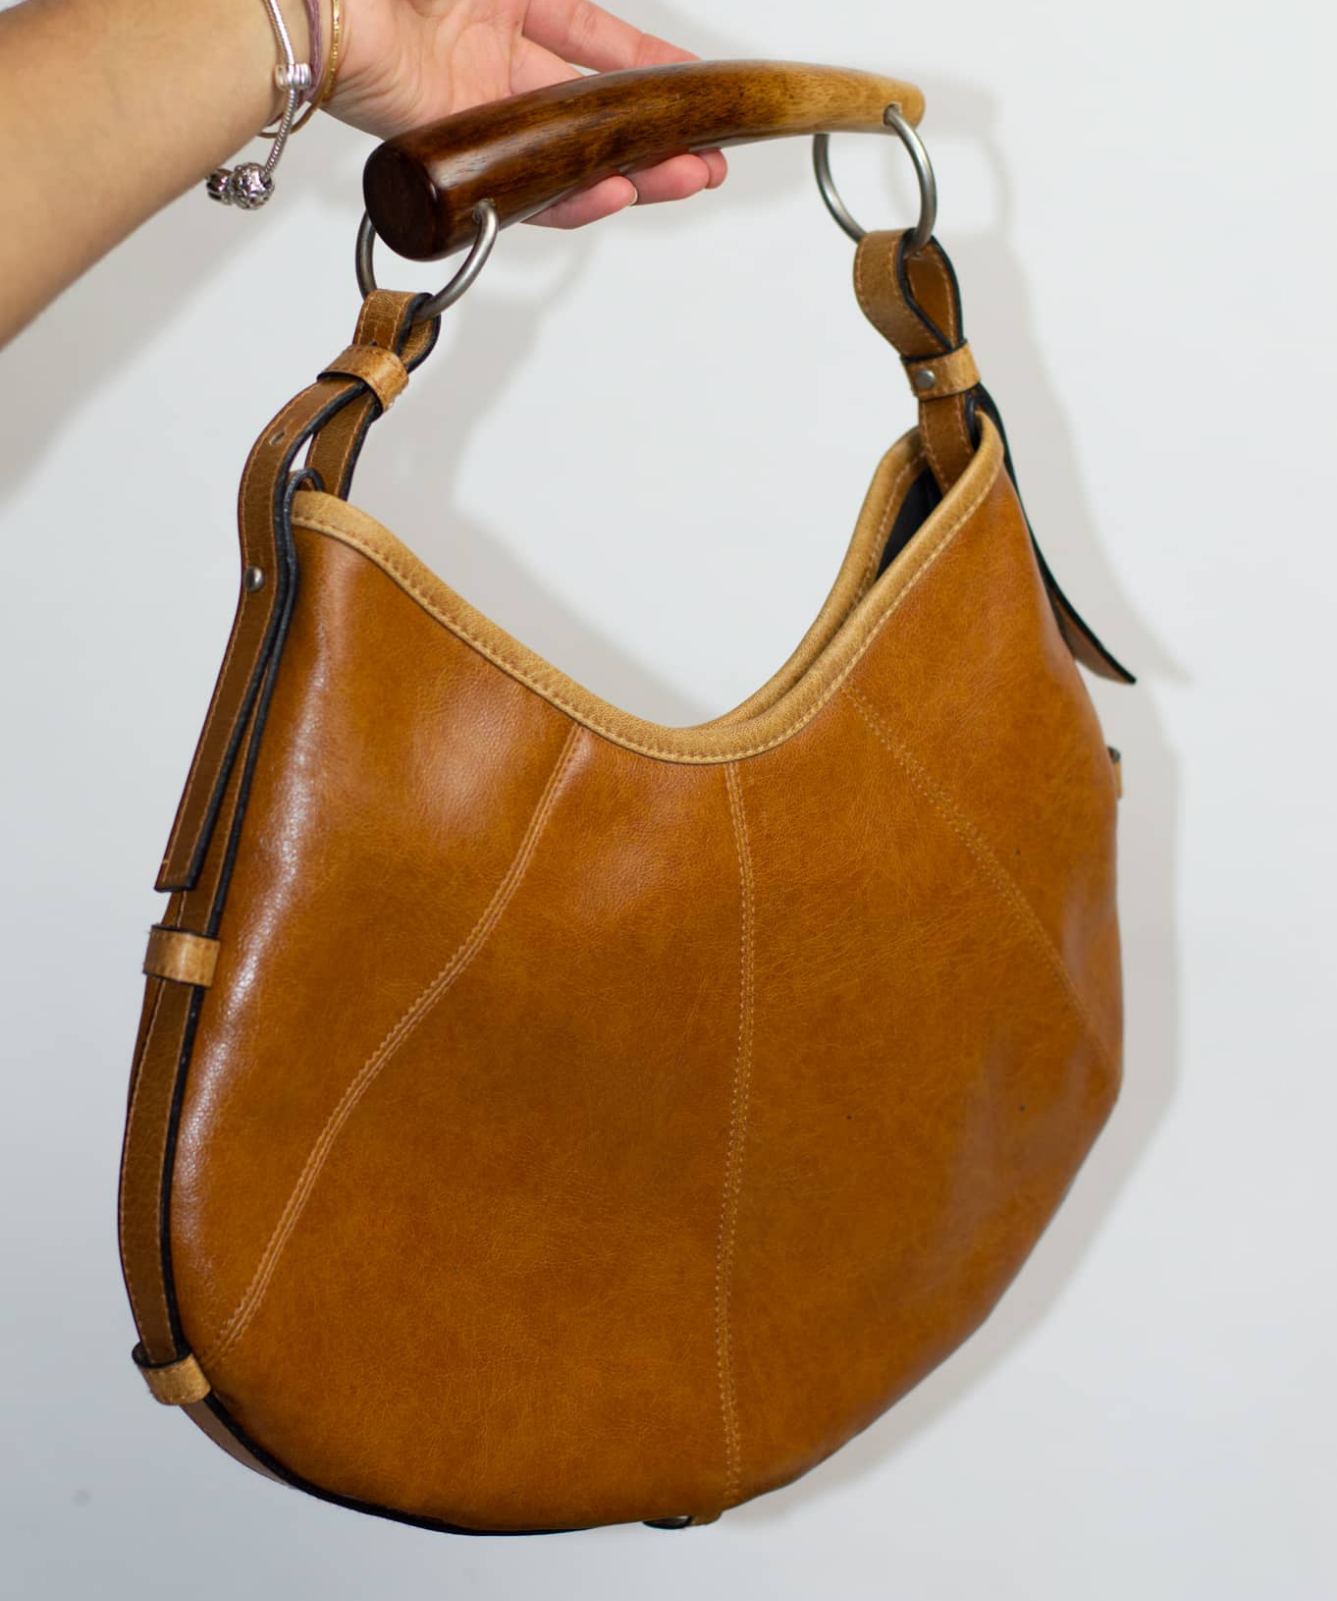 Vintage Wood Handled Leather Bag